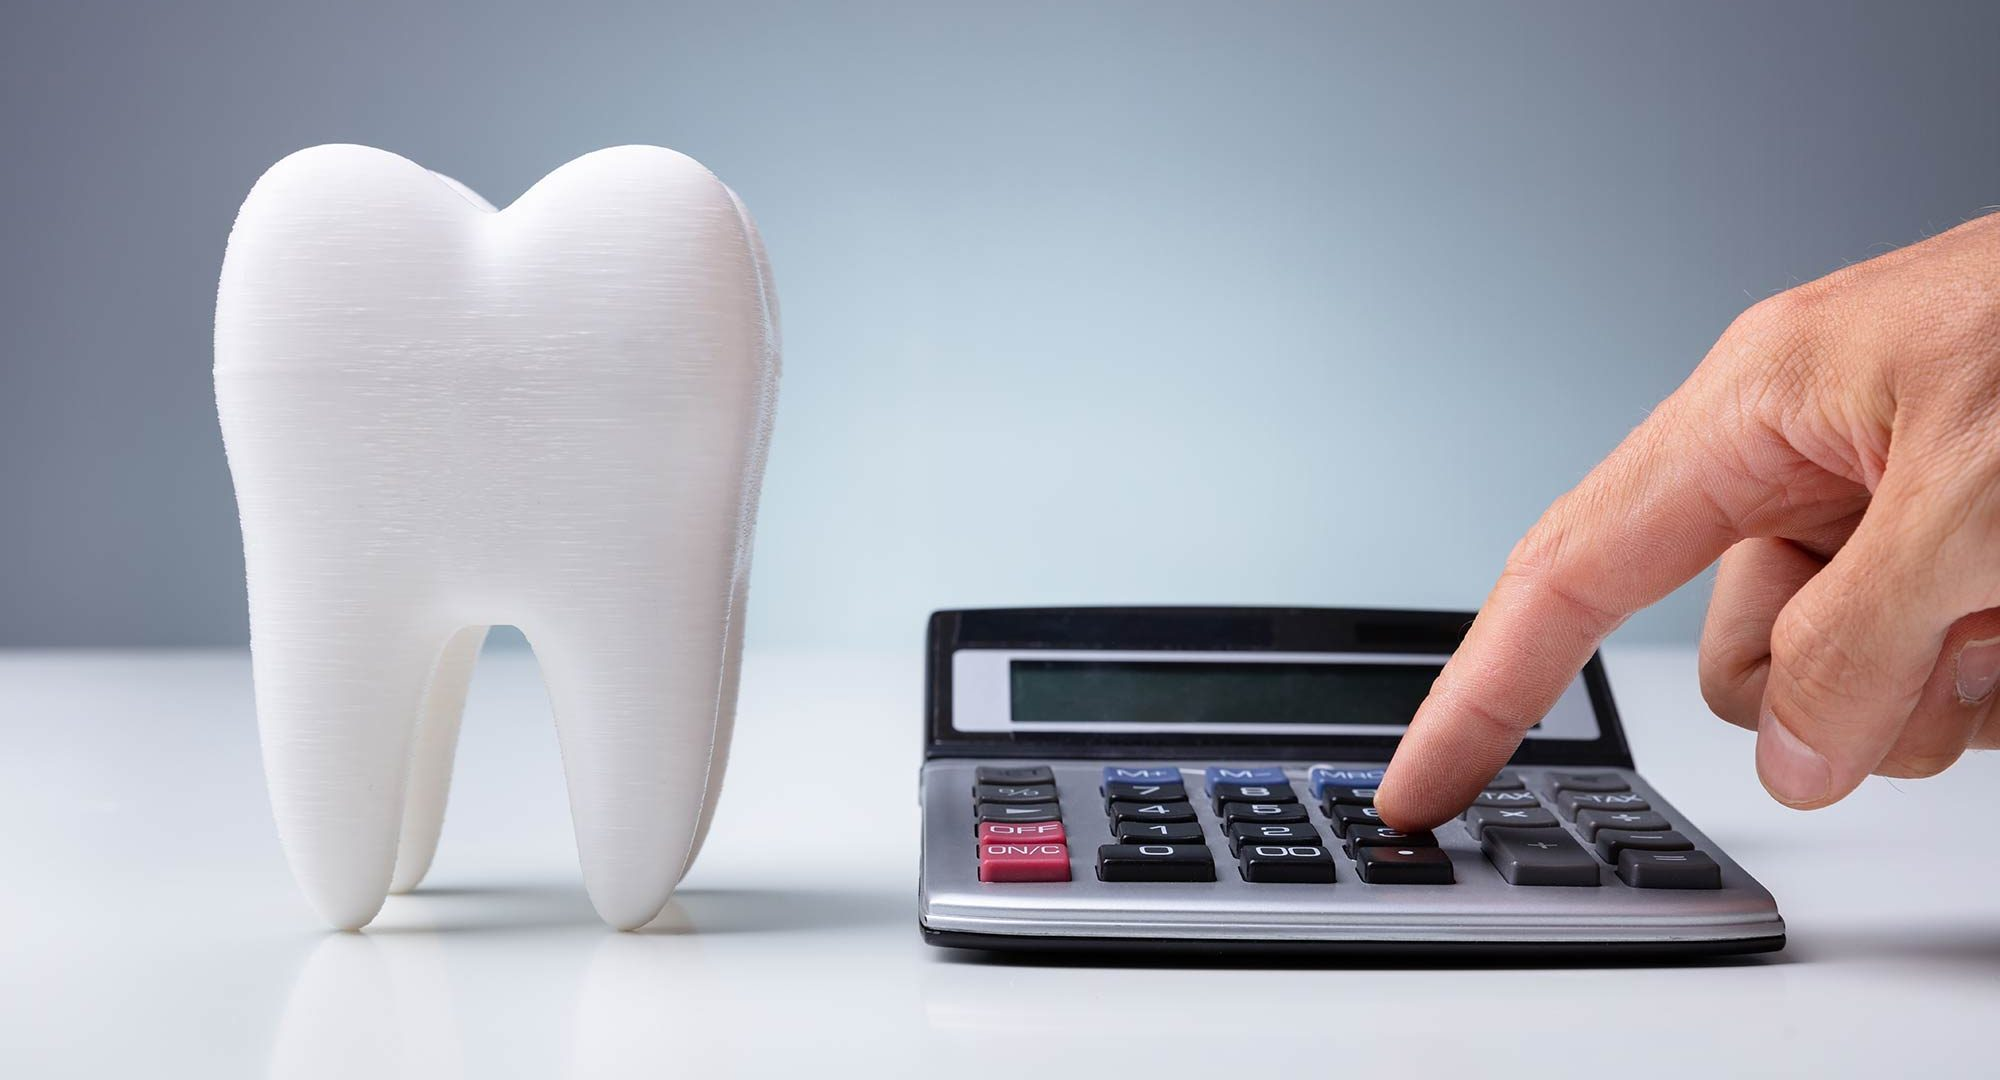 More than one in two (53%) dental professionals said financial worries were having the biggest impact on their mental health during the pandemic, a survey reveals